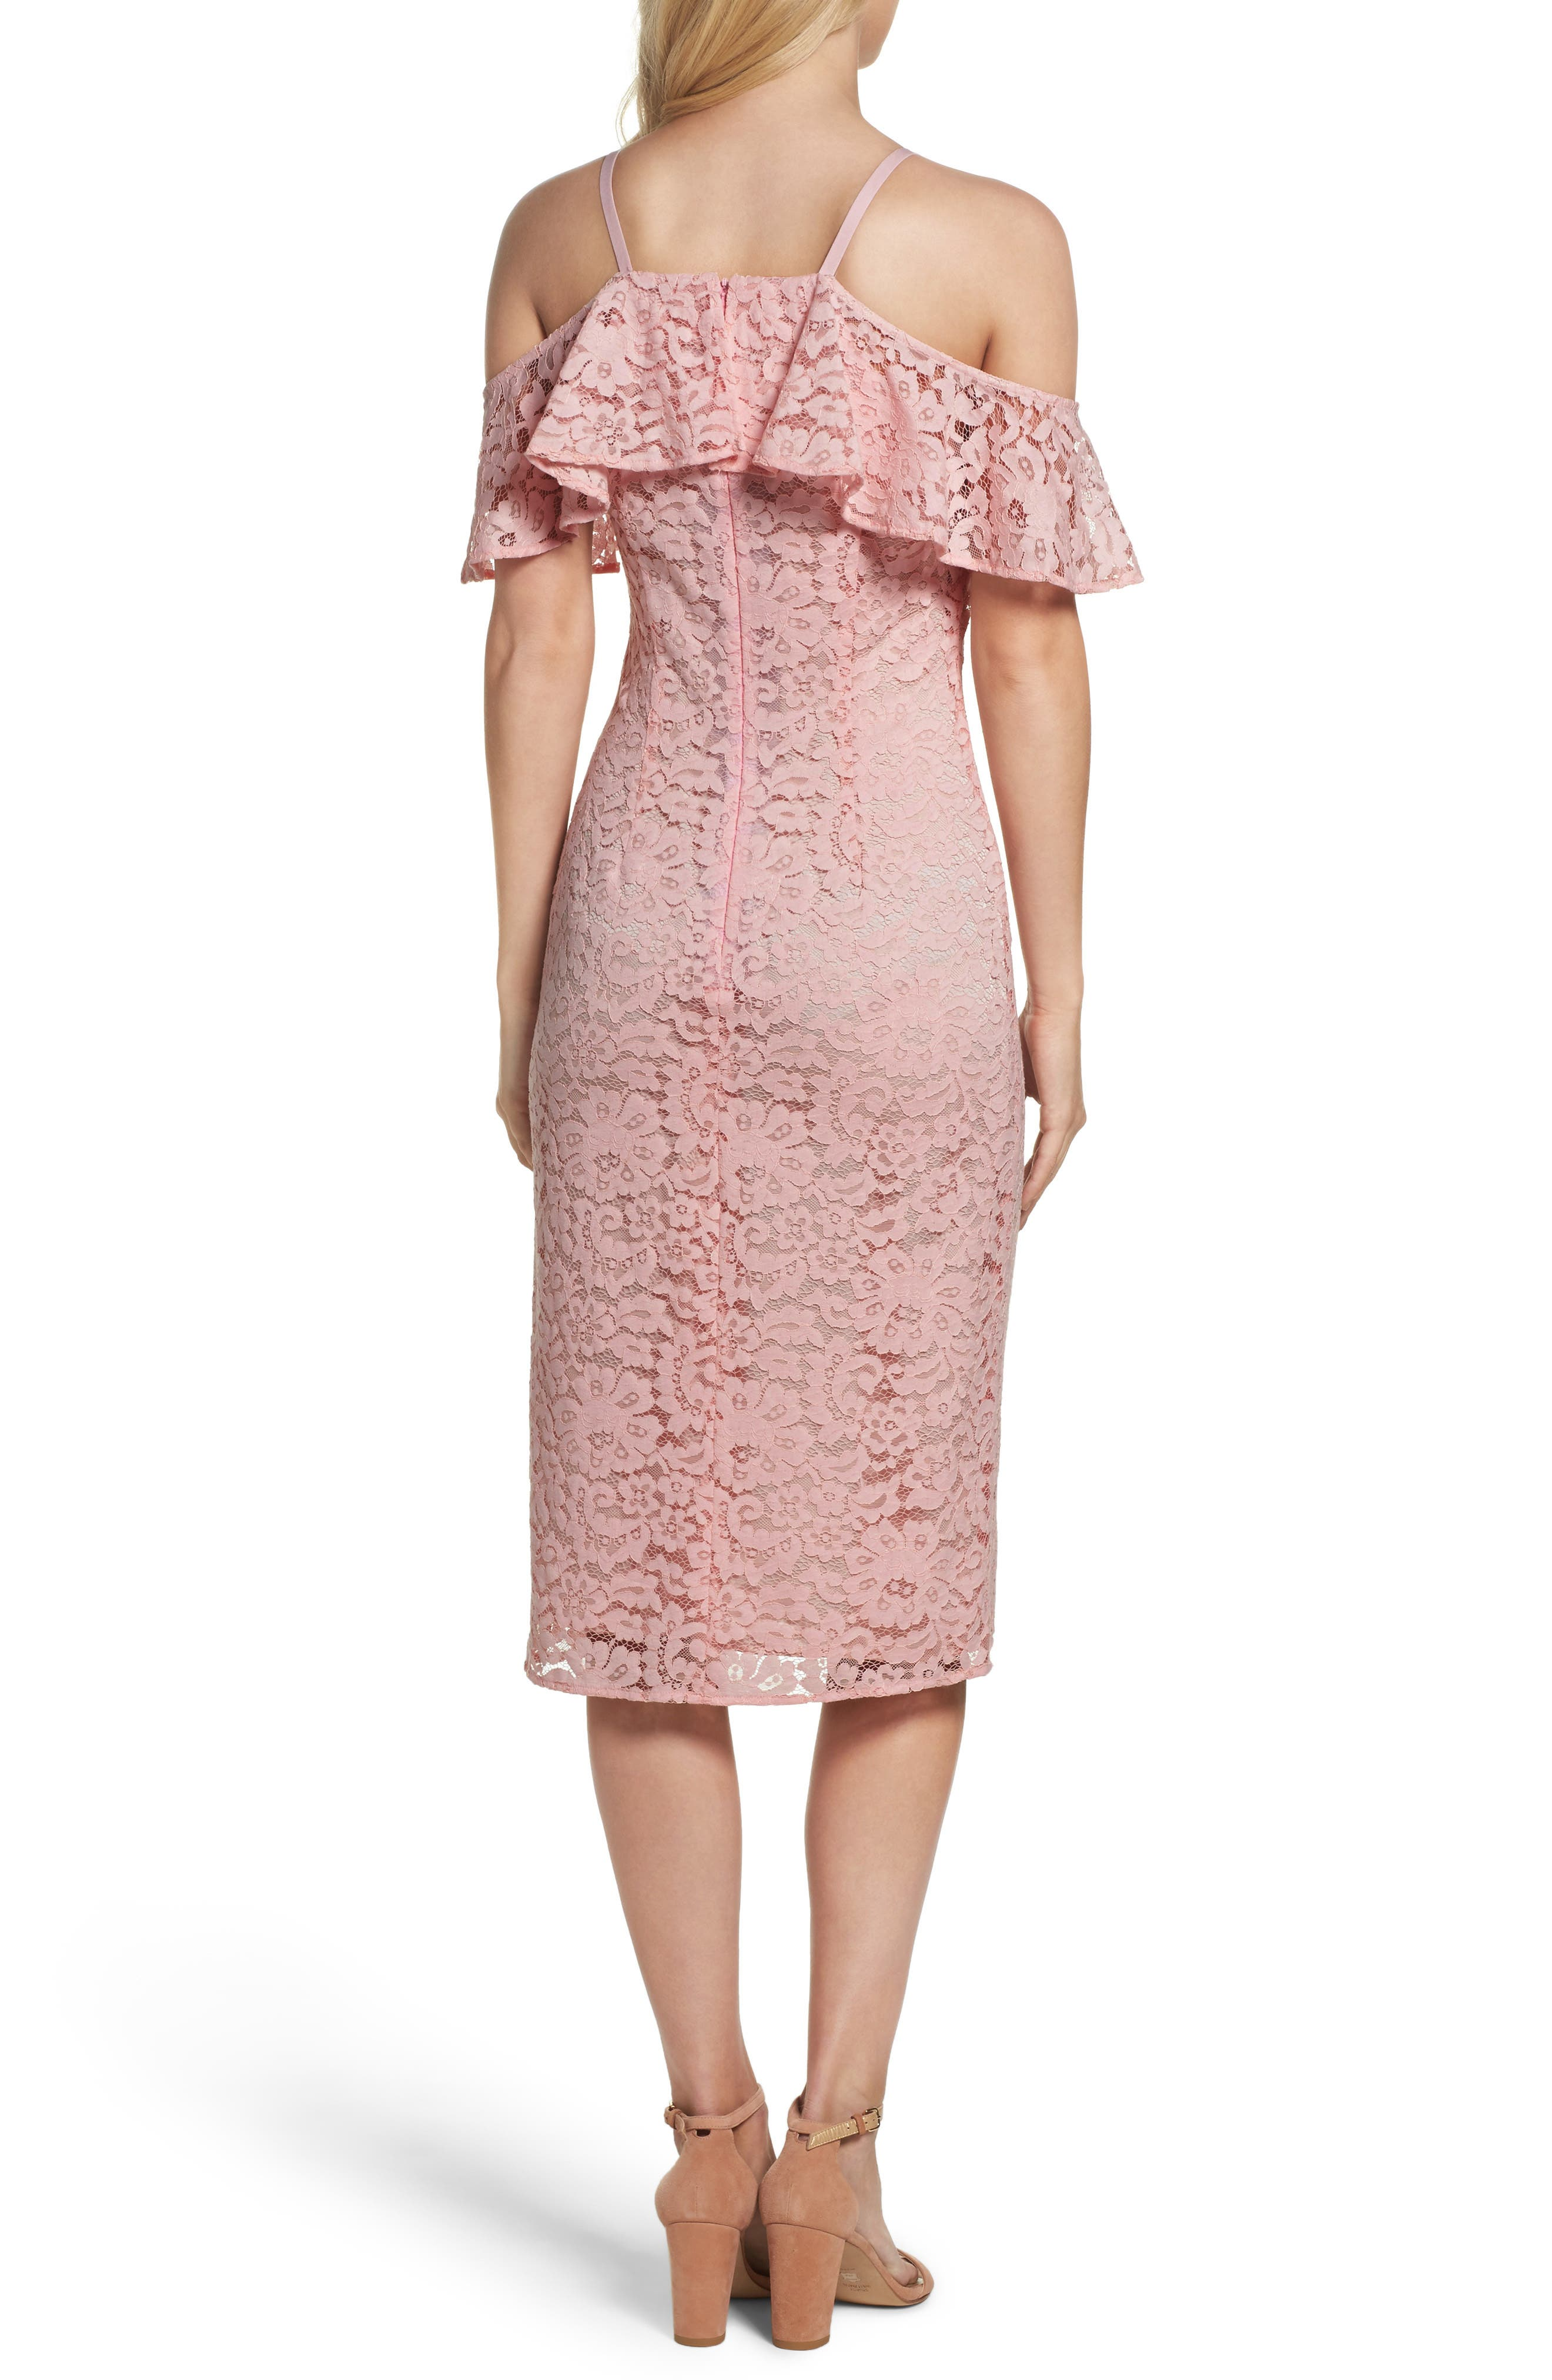 Mysterious Off the Shoulder Dress,                             Alternate thumbnail 2, color,                             655